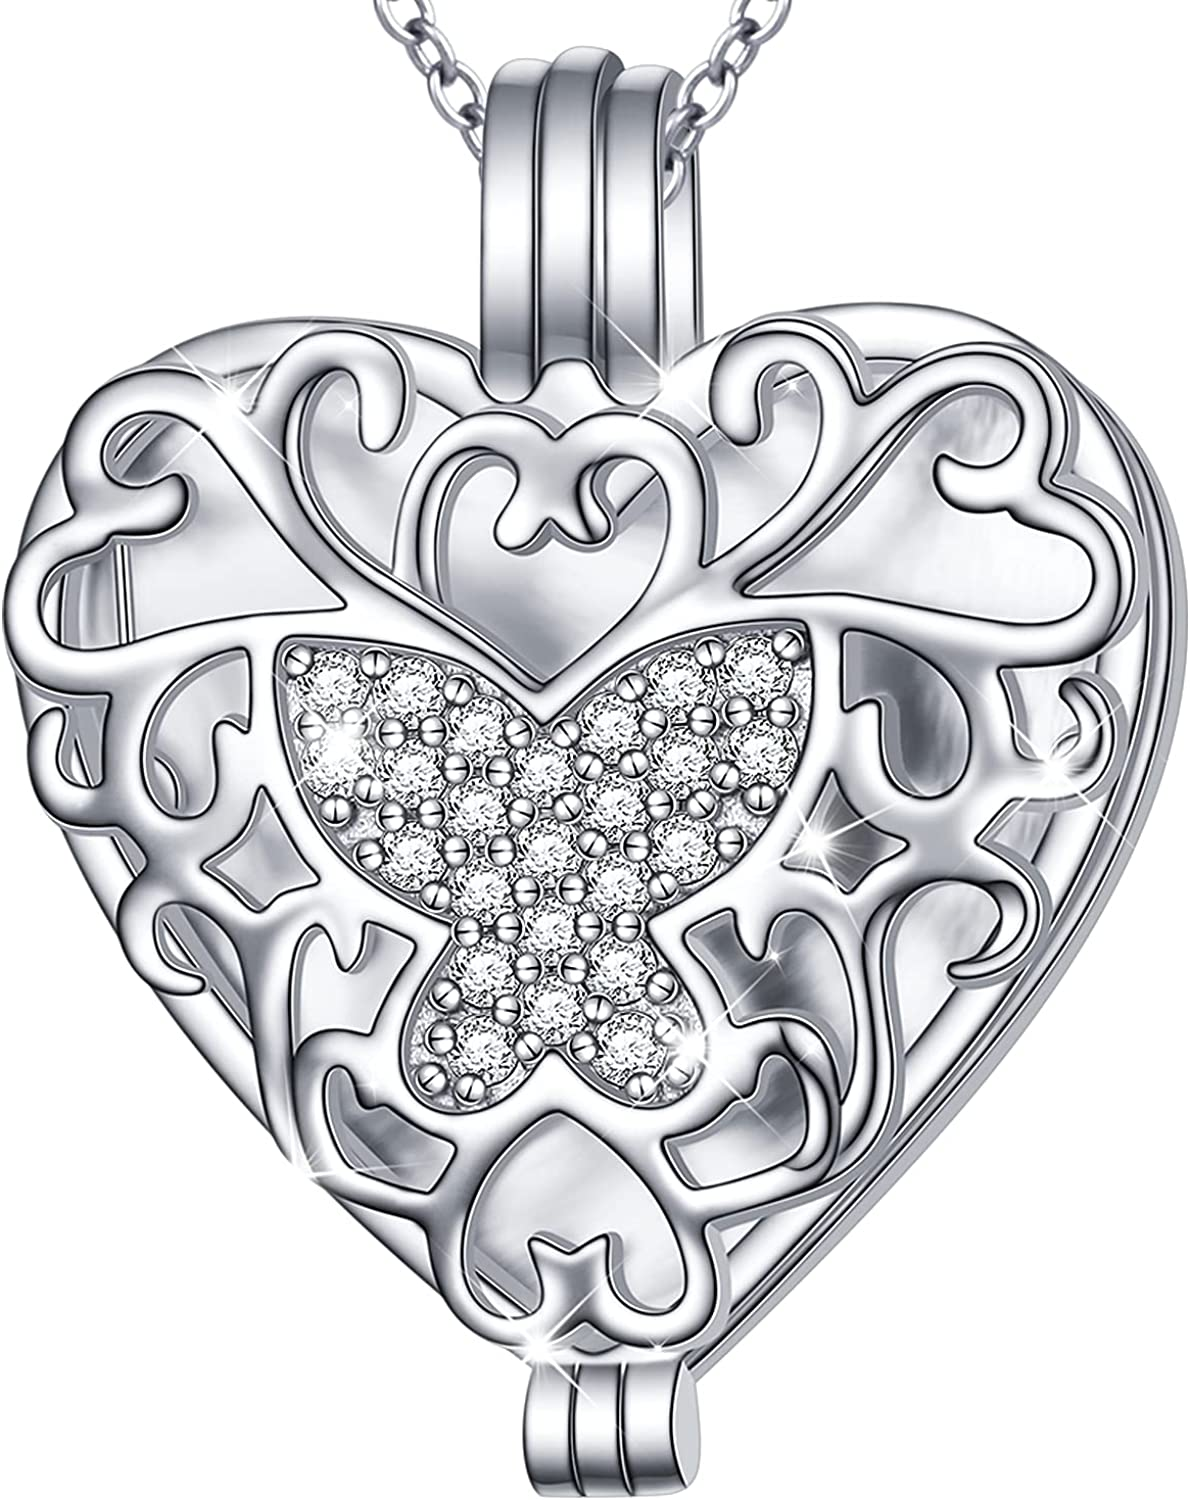 Ladytree Butterfly Heart Locket Photo Hold Pendant Industry No. 1 Deluxe That Necklace